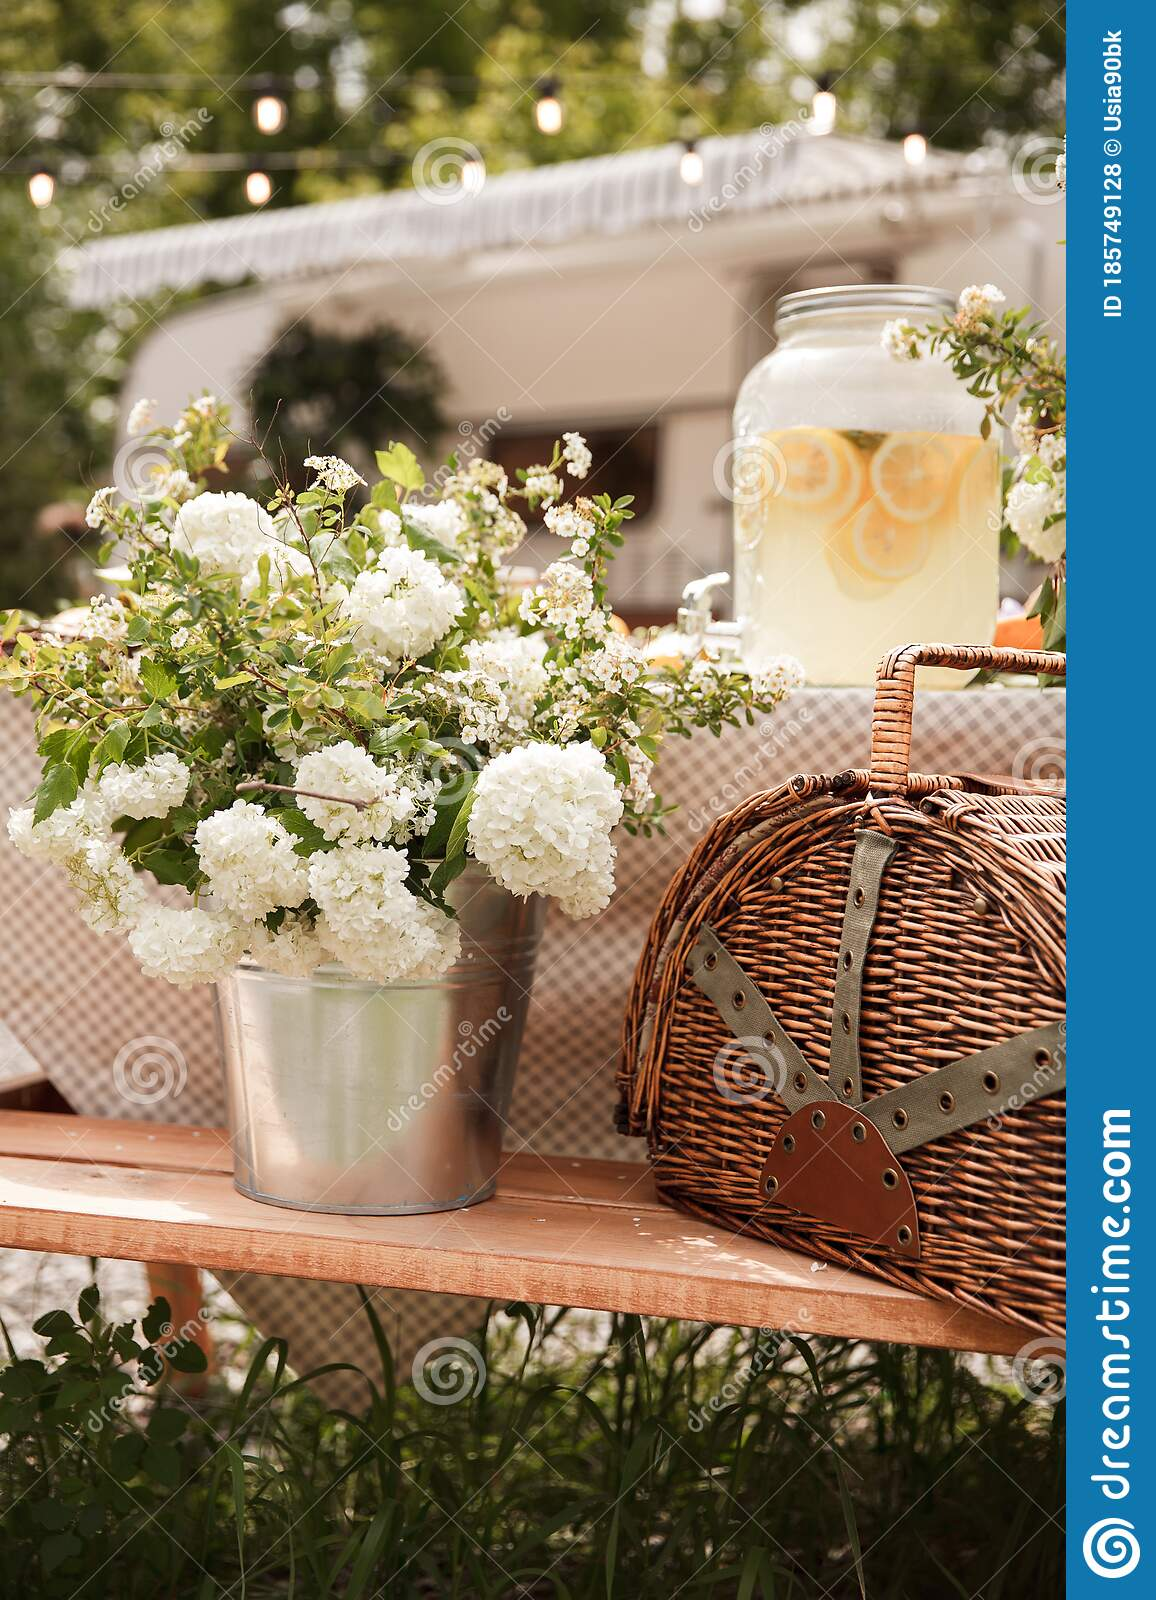 Picnic Basket With Fruits Picnic In The Nature White Flowers In A Pot Stock Photo Image Of Gardening Blooming 185749128